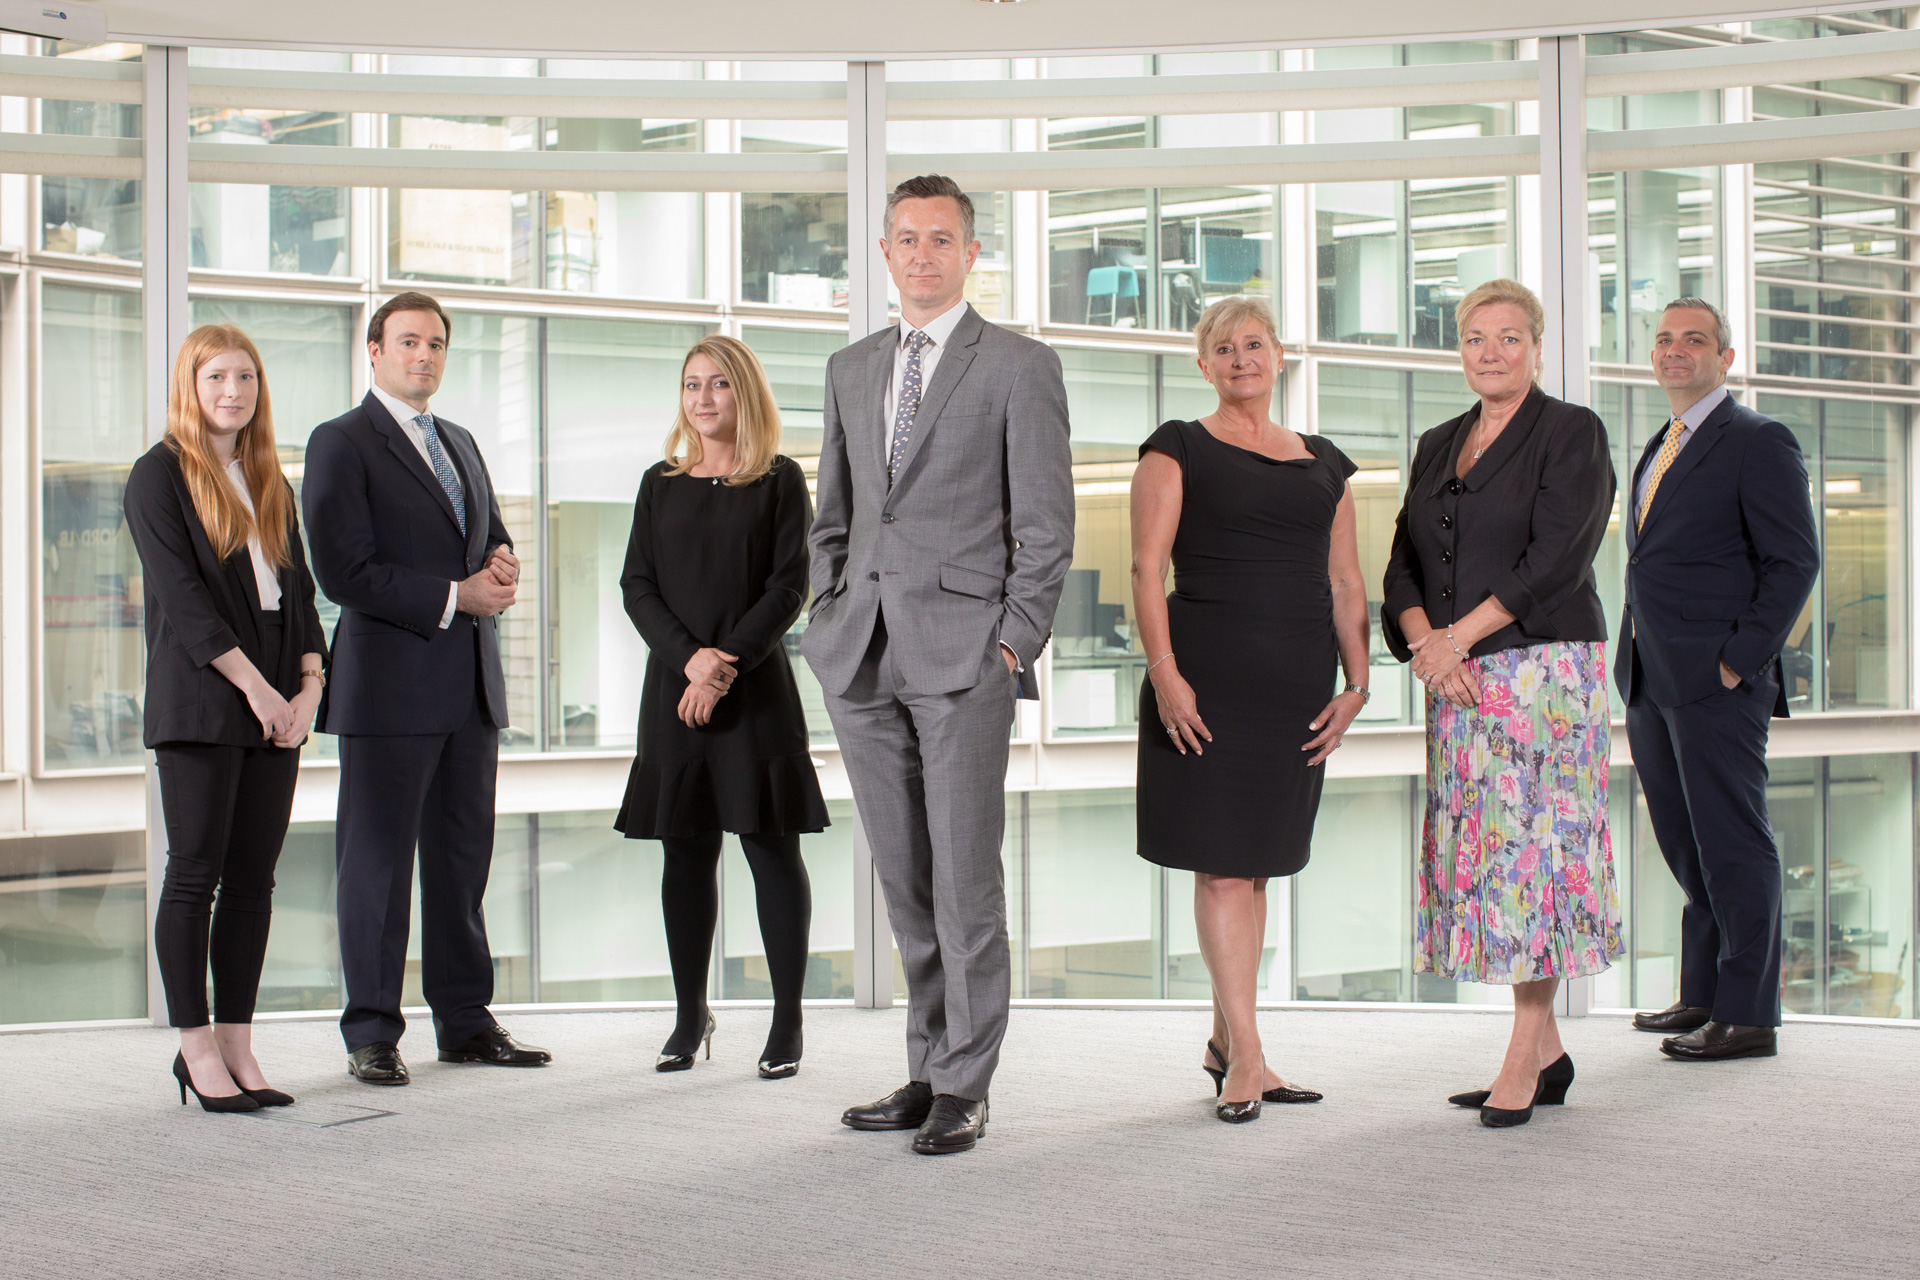 Business group photography London